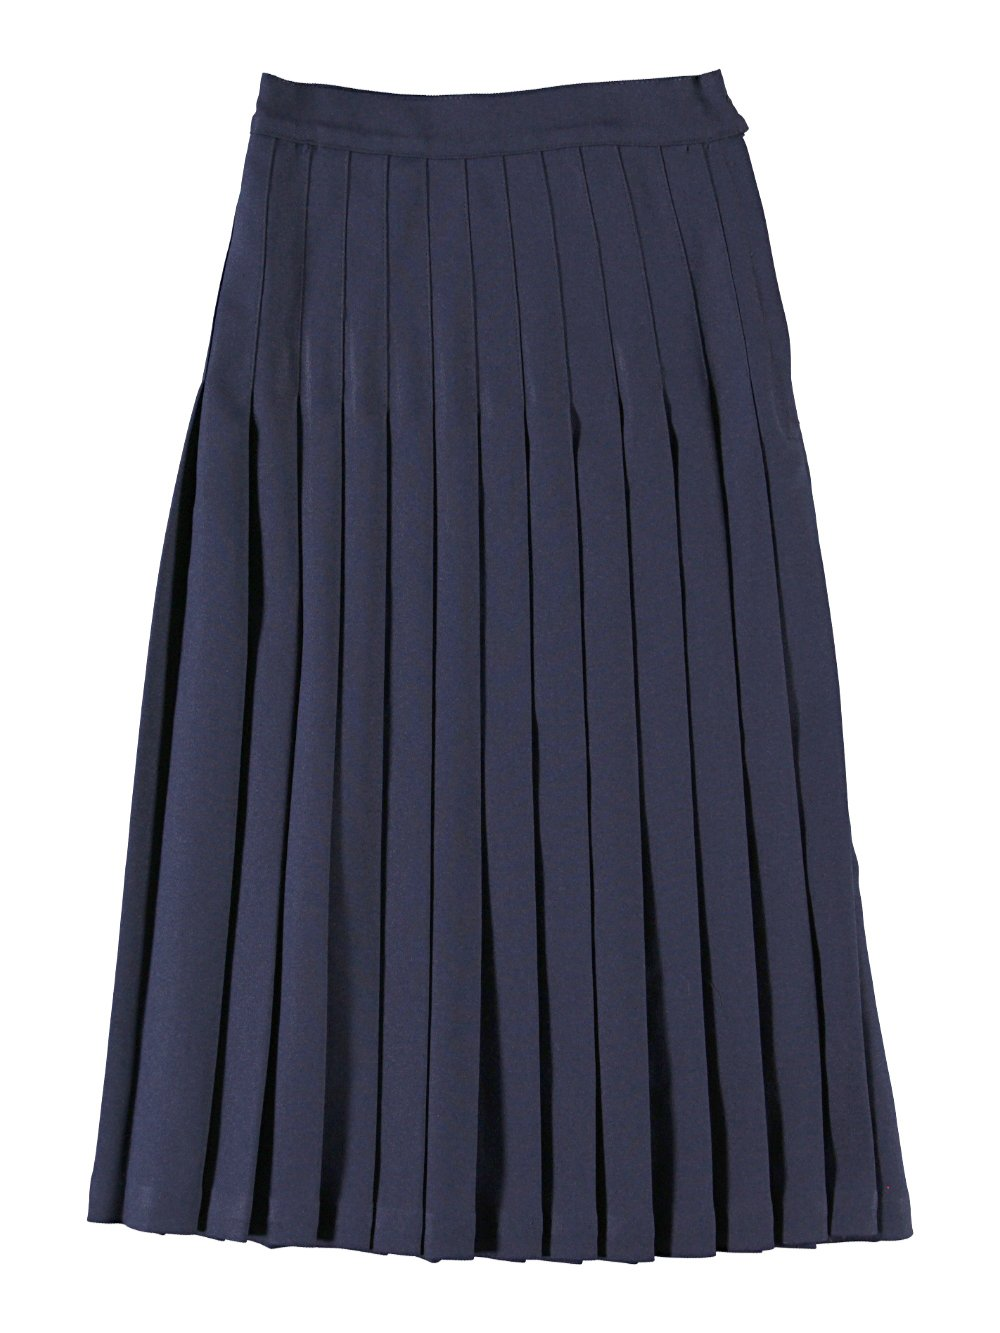 Cookie's Brand Big Girls' Long Pleated Skirt - navy, 14